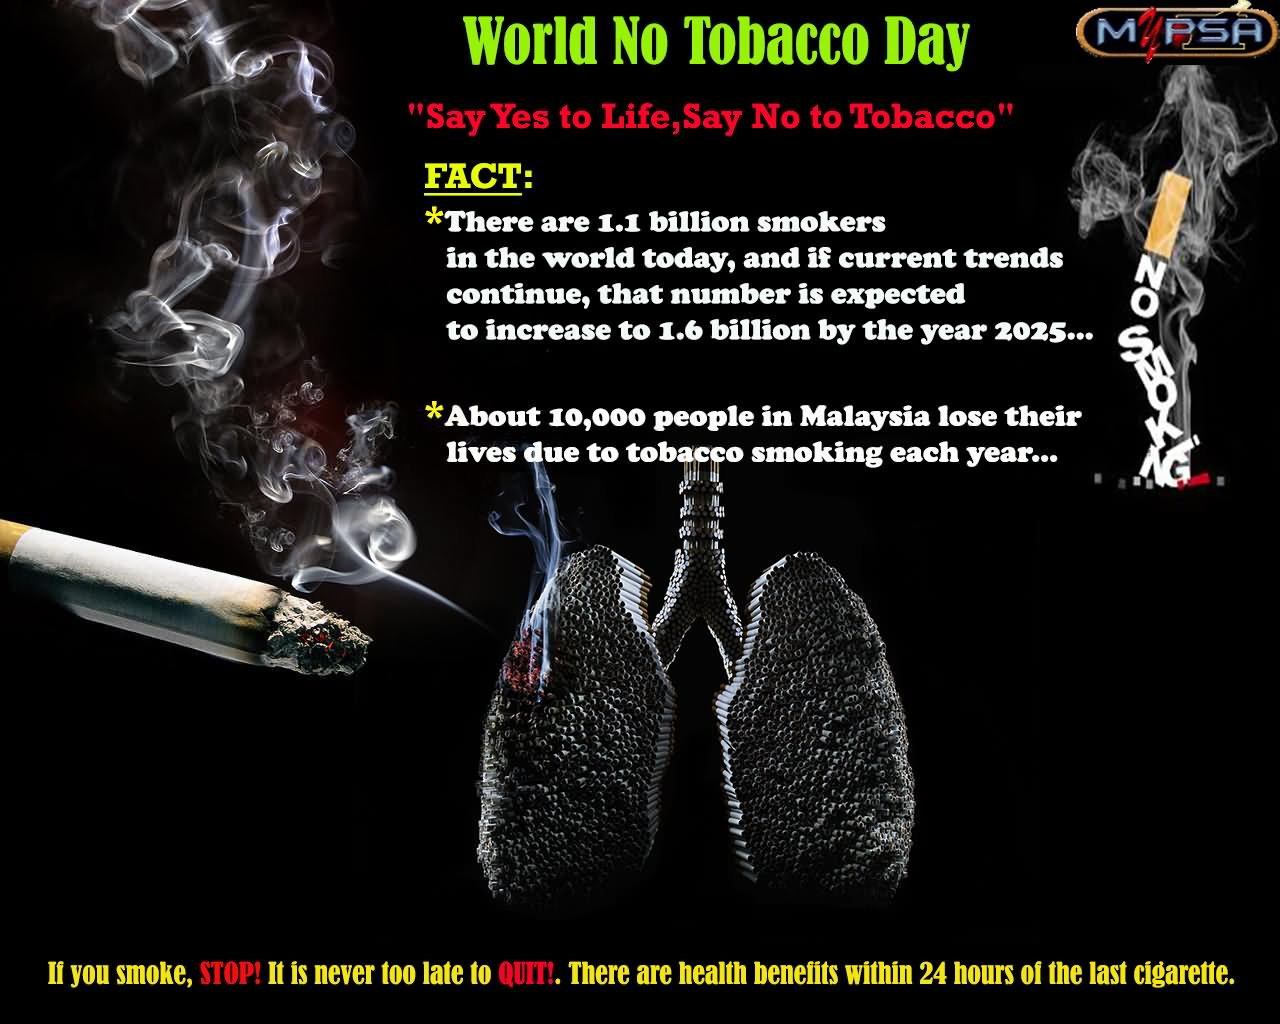 beautiful world no tobacco day wish pictures and images world no tobacco day say yes to life say no to tobacco